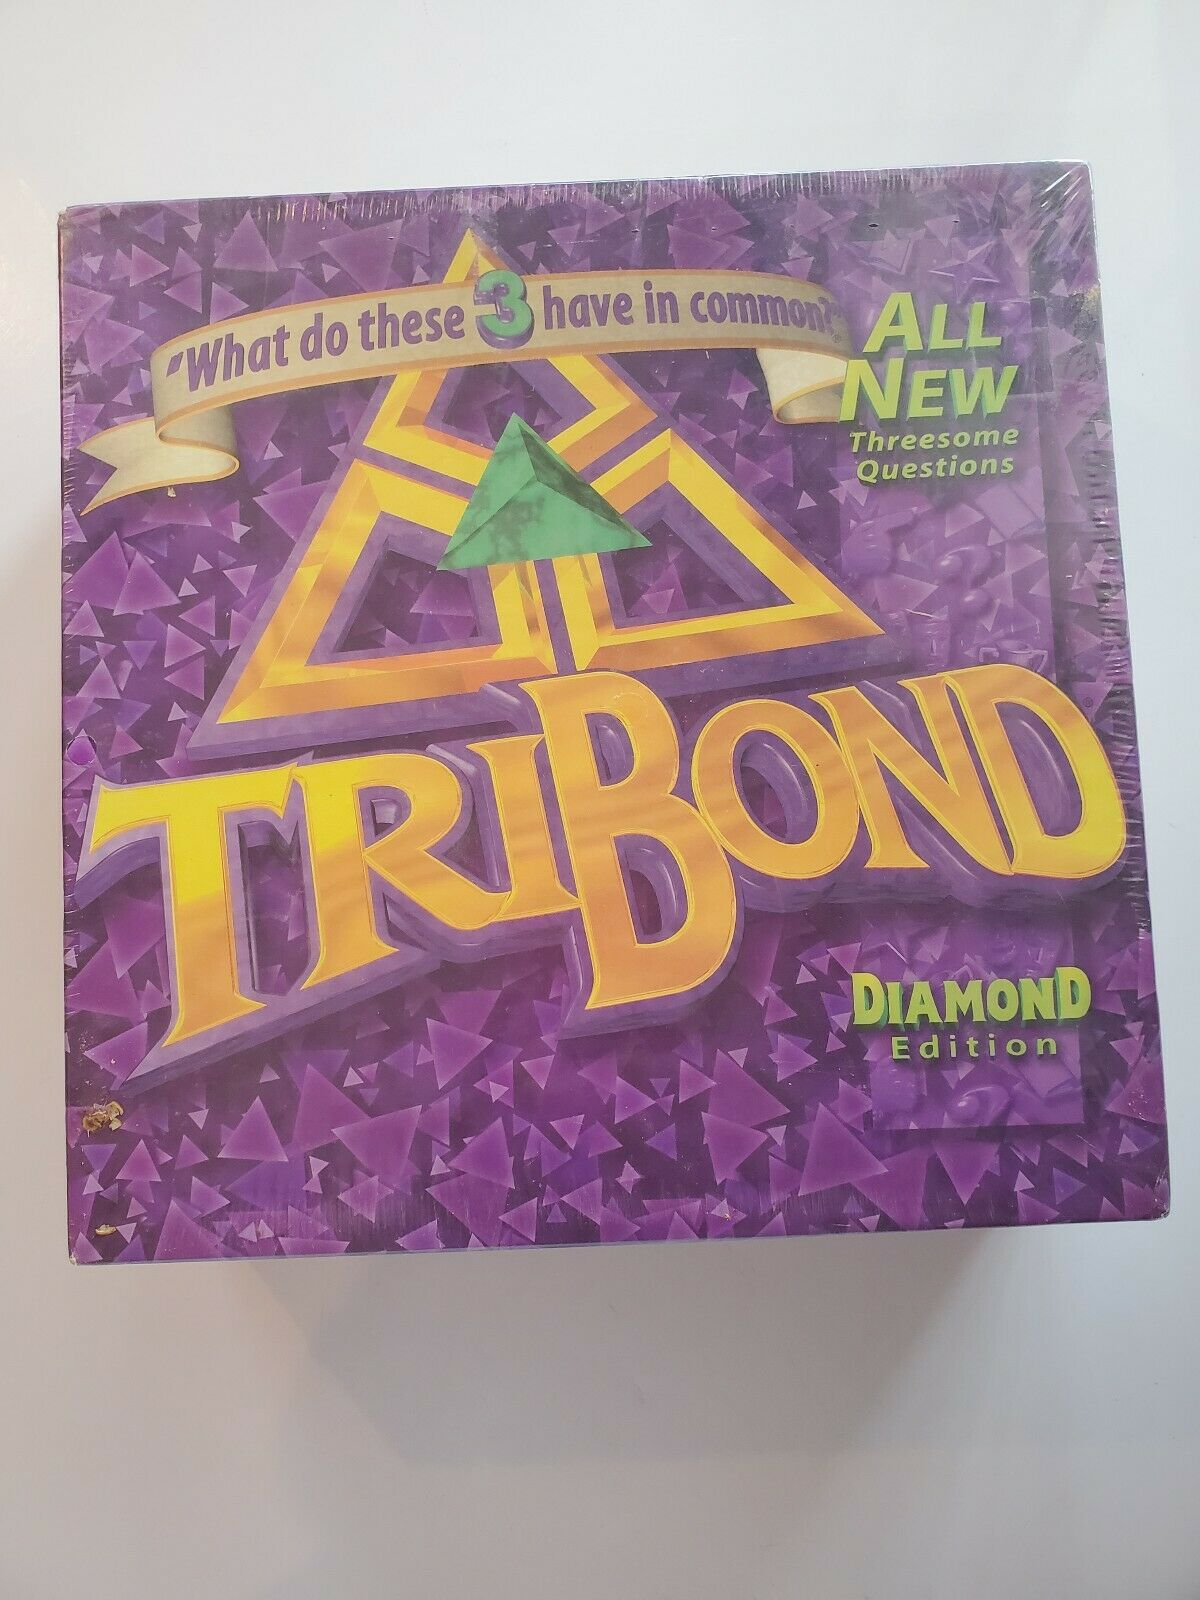 Tribond Diamond Edition Board Game 1998 3 questions new